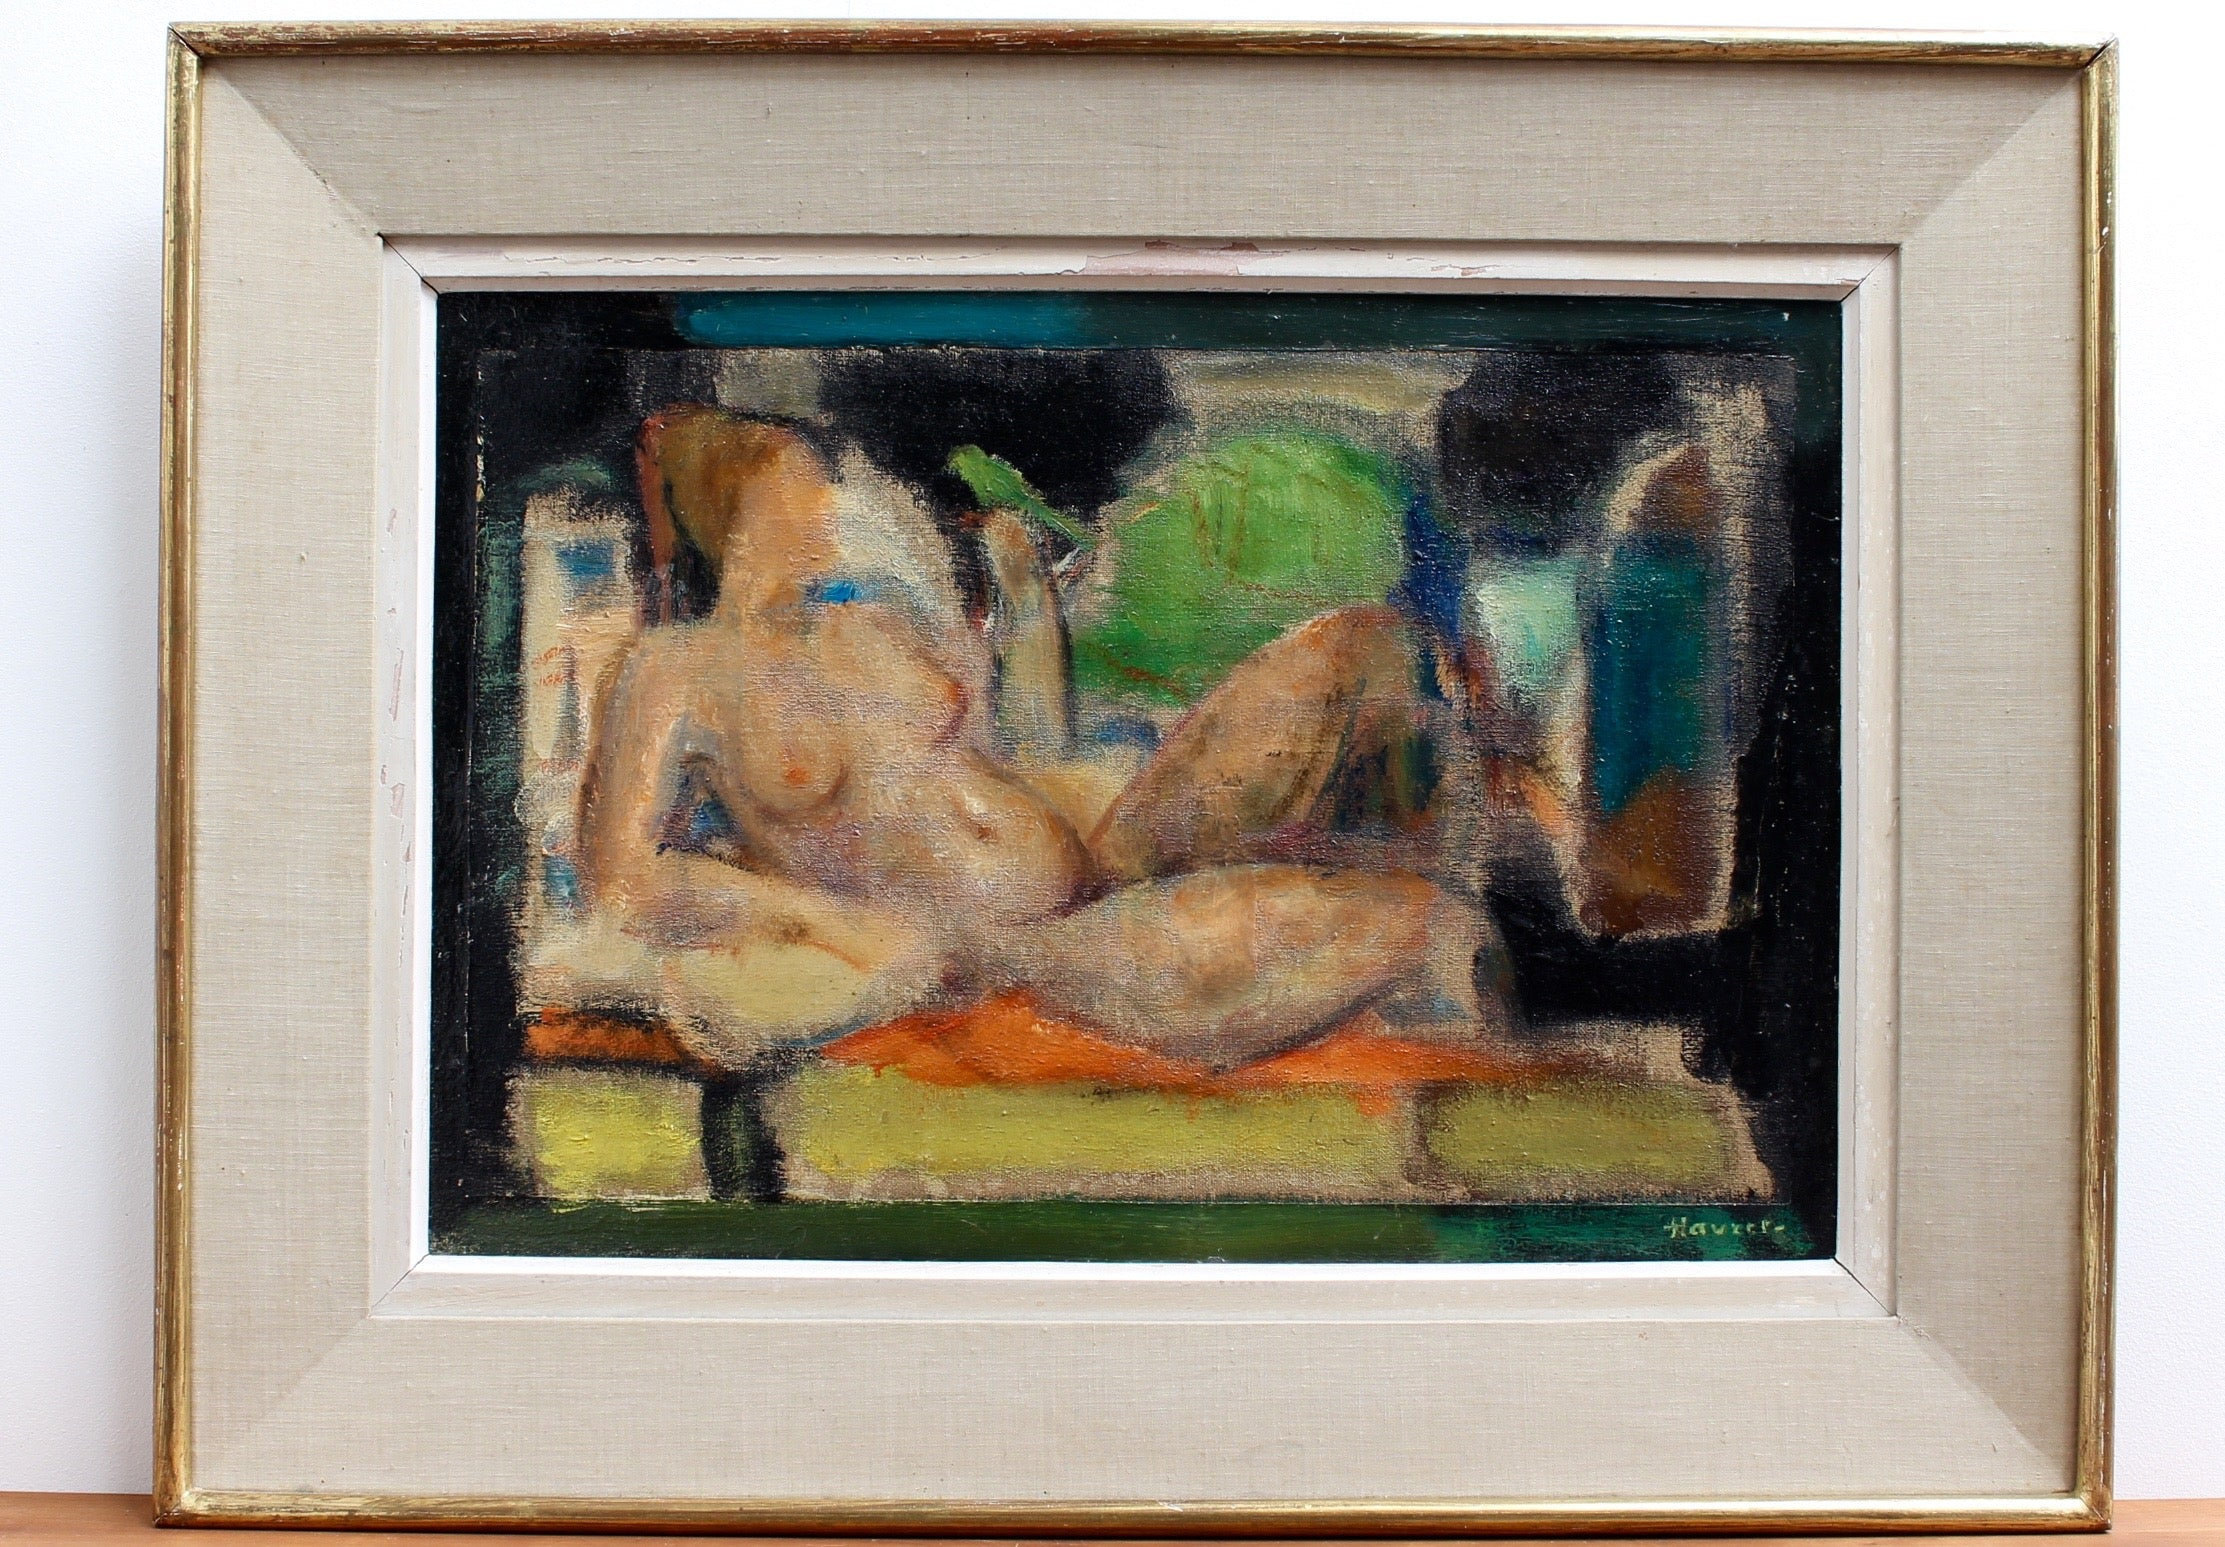 'Reclining Nude with Parakeet' by L Hauet (circa 1950s)